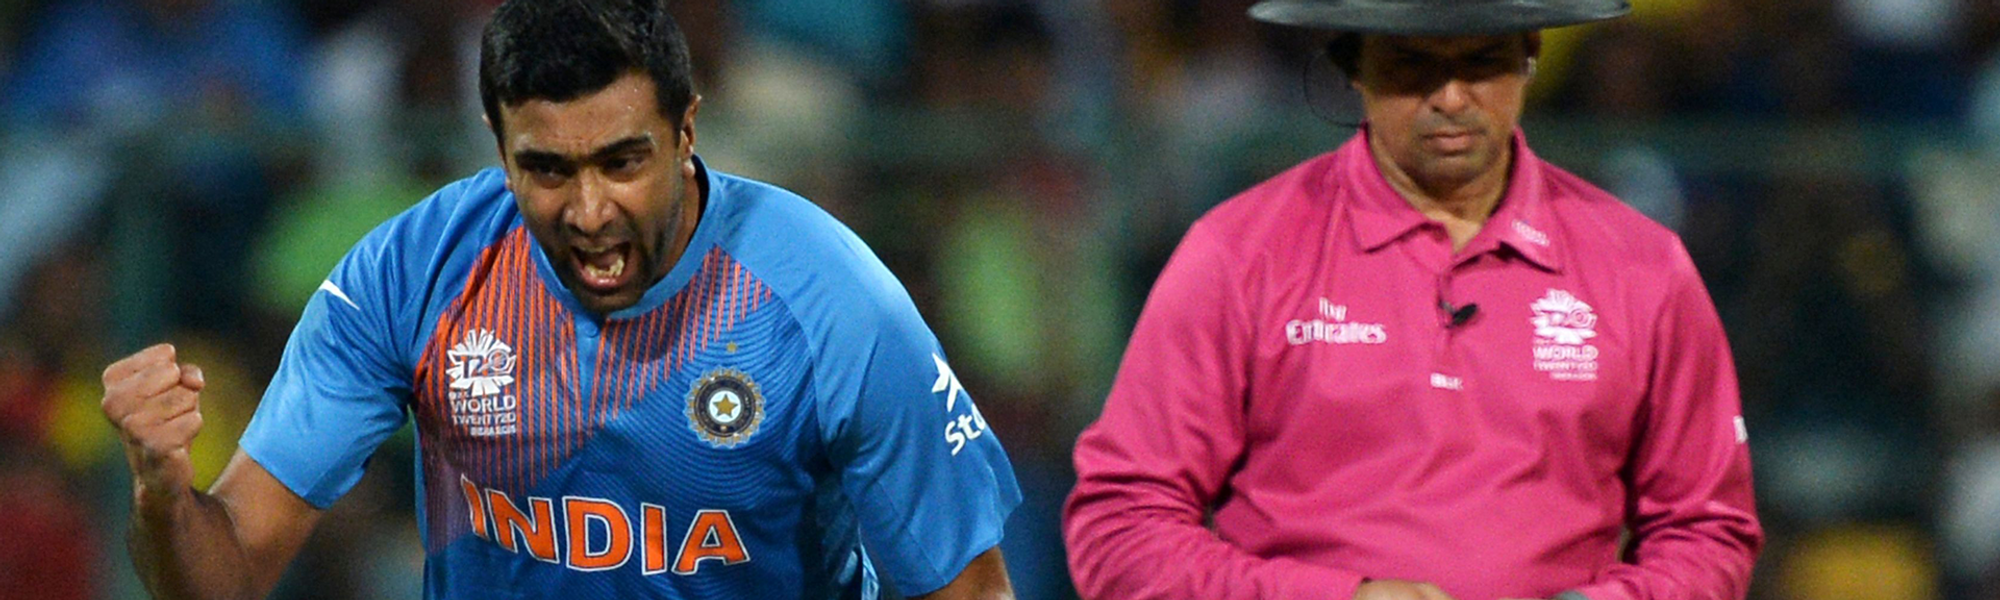 Ashwin has been named in India's T20WC squad